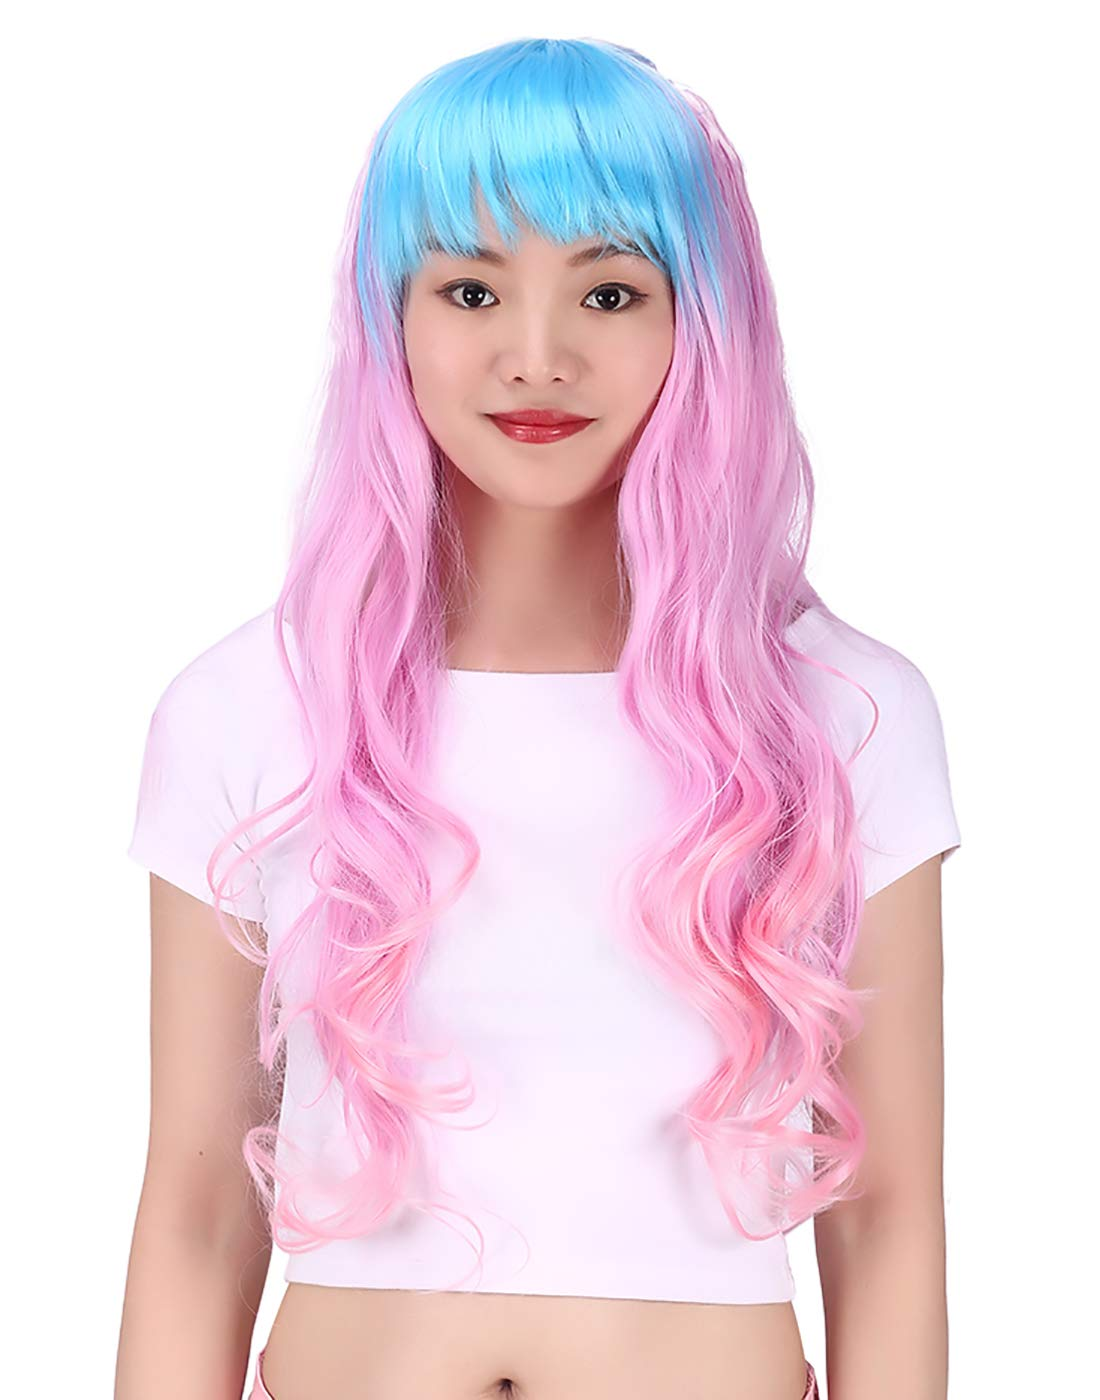 HDE Long Wavy Multi-Colored Cosplay Wig Halloween Costume Hair Accessory (25'' Length) - Pink